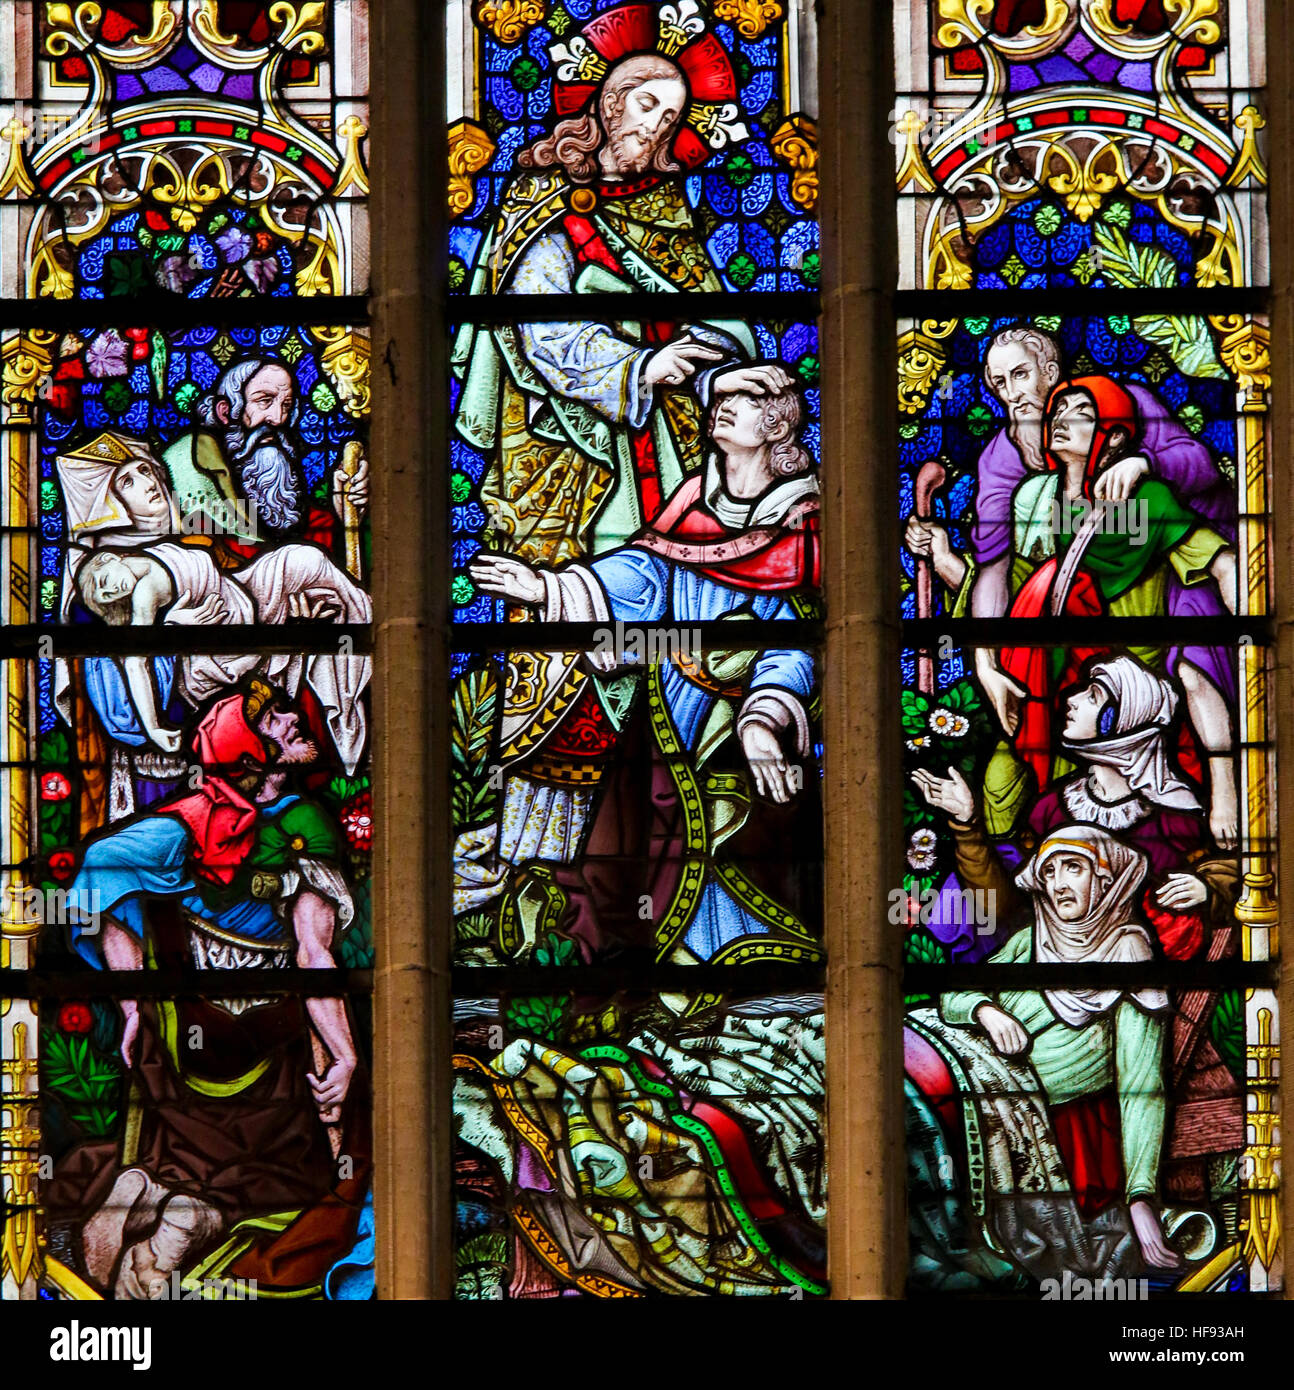 Stained Glass window depicting Healings by Jesus Christ in the Cathedral of Saint Bavo in Ghent, Flanders, Belgium. - Stock Image